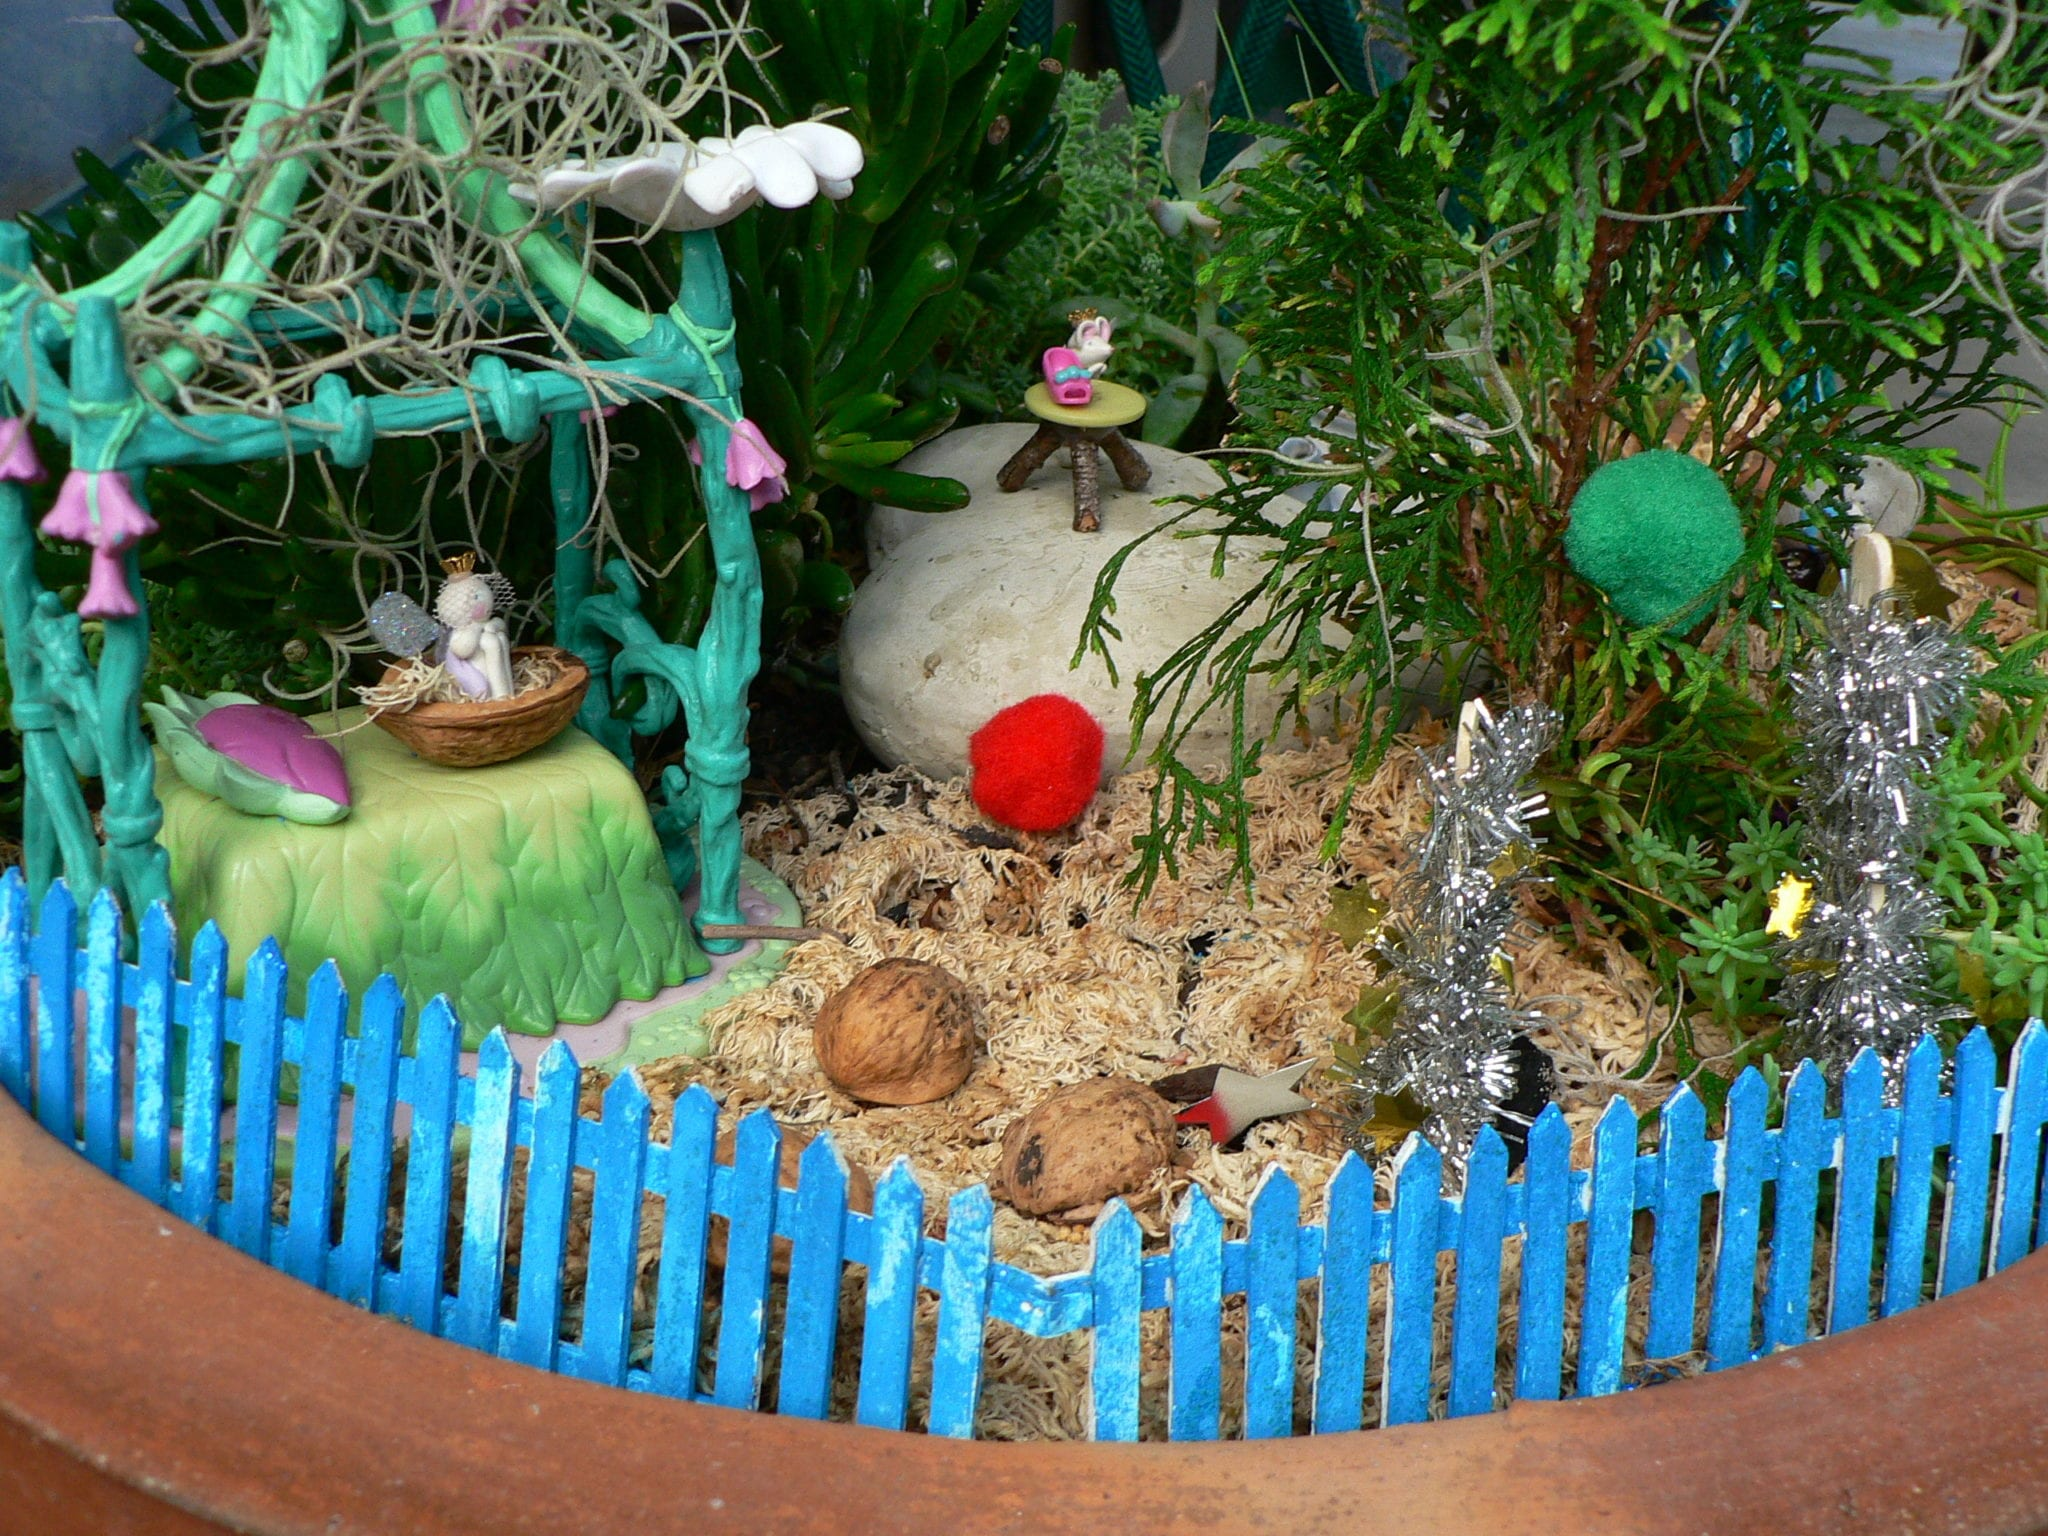 Beautiful Do YOU Have A Fairy Garden Yet? Do You Let Your Children Play With It?